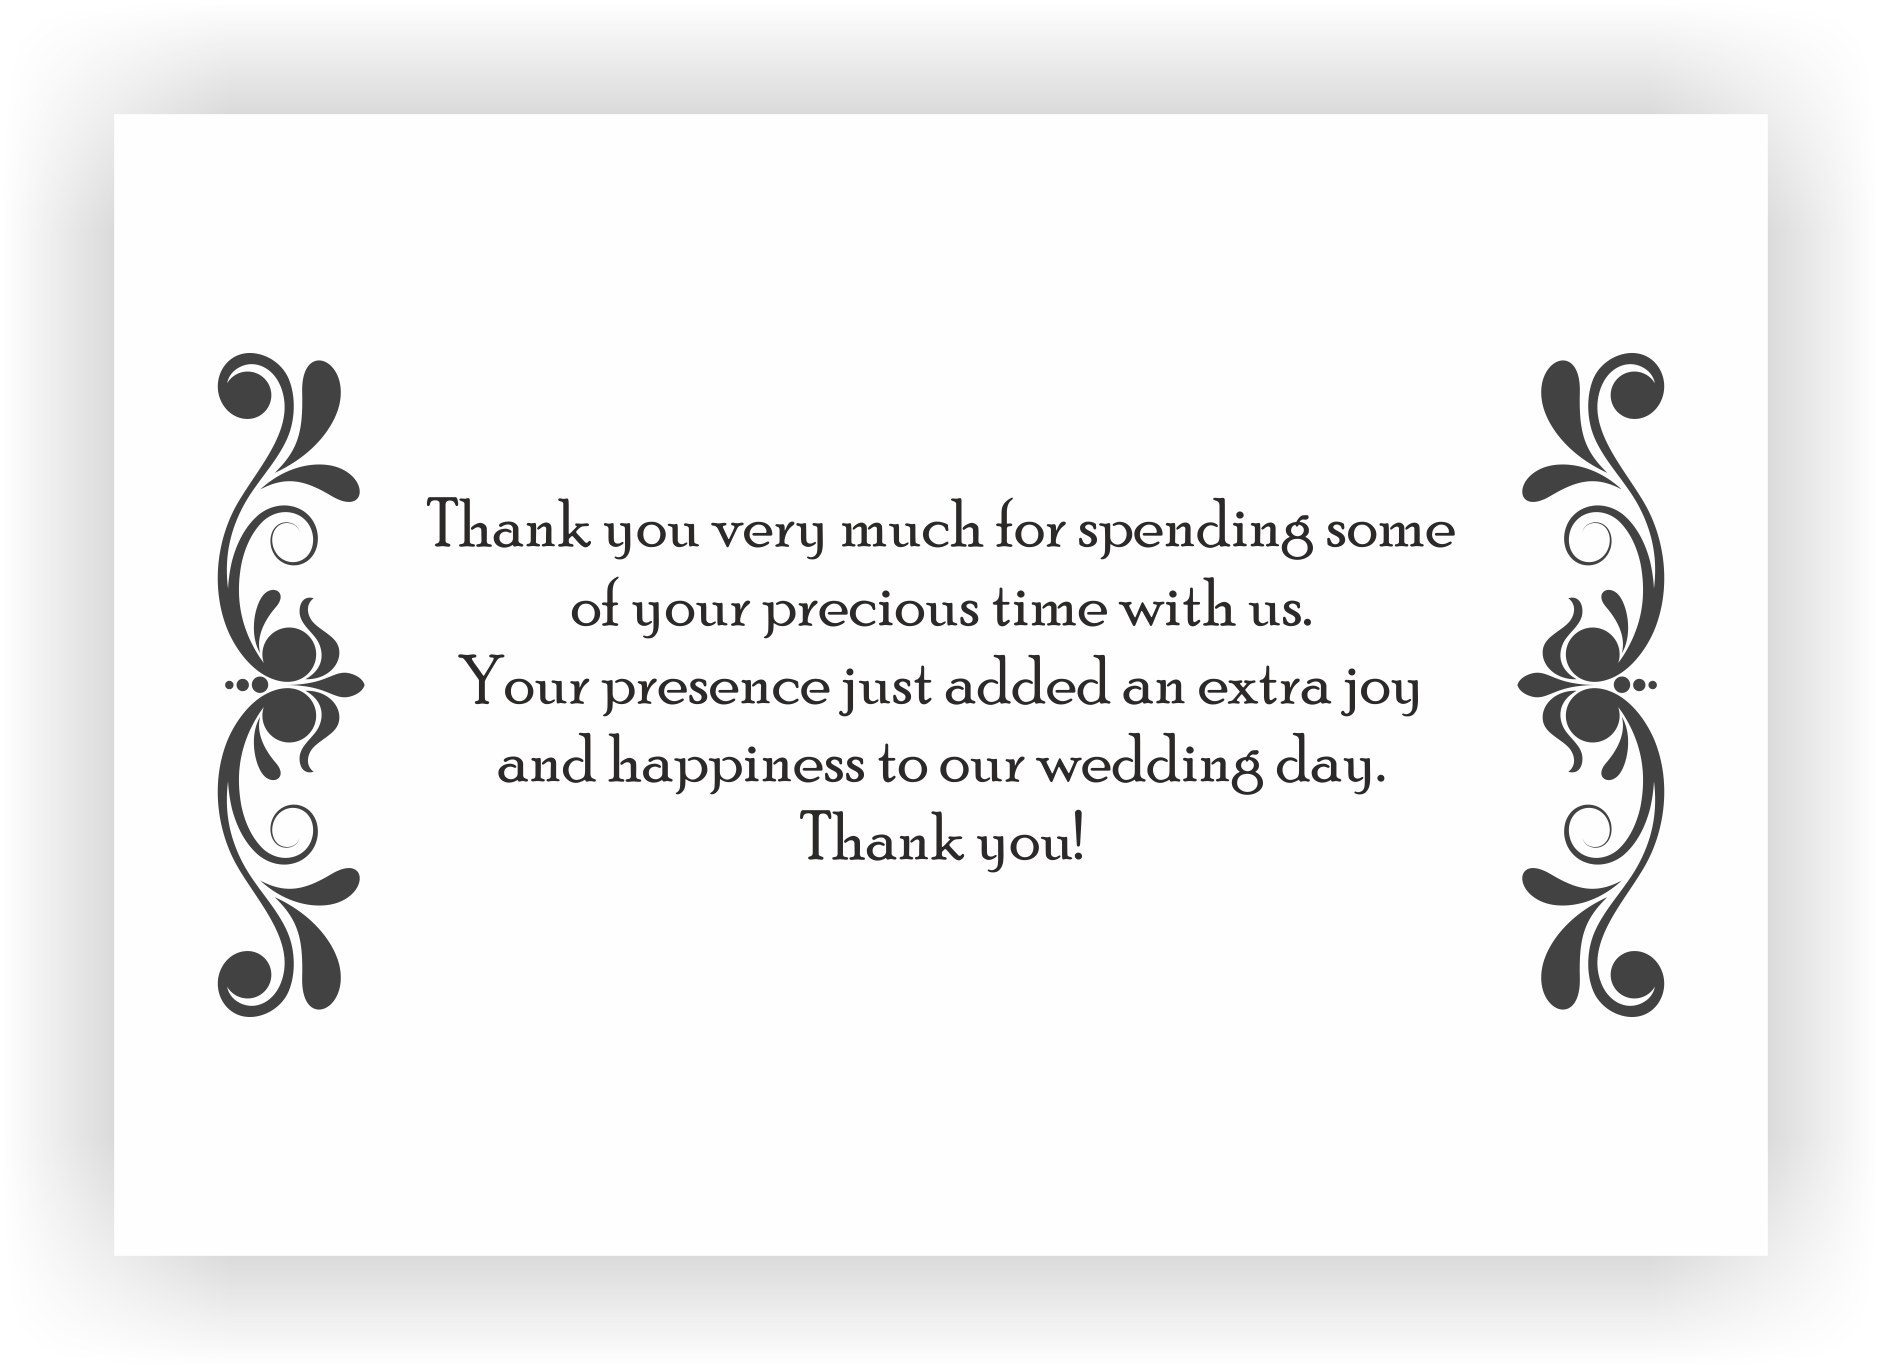 Thank you note for wedding guests